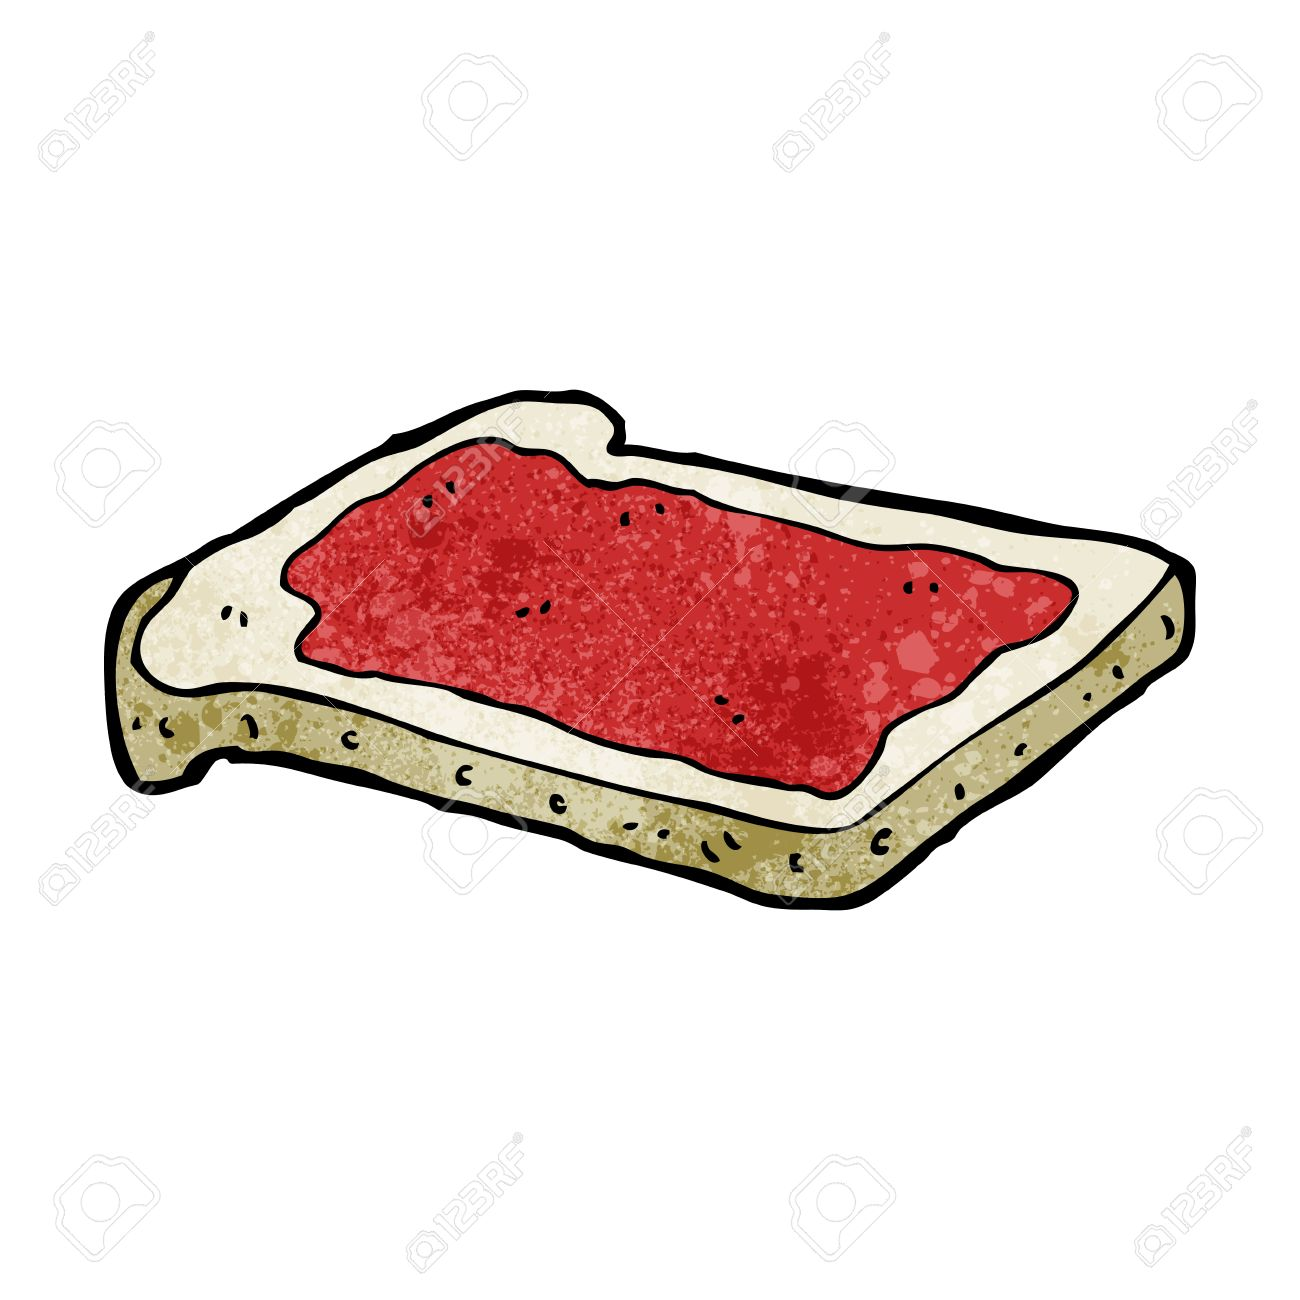 cartoon jam on toast royalty free cliparts vectors and stock rh 123rf com toaster clip art free toaster clip art